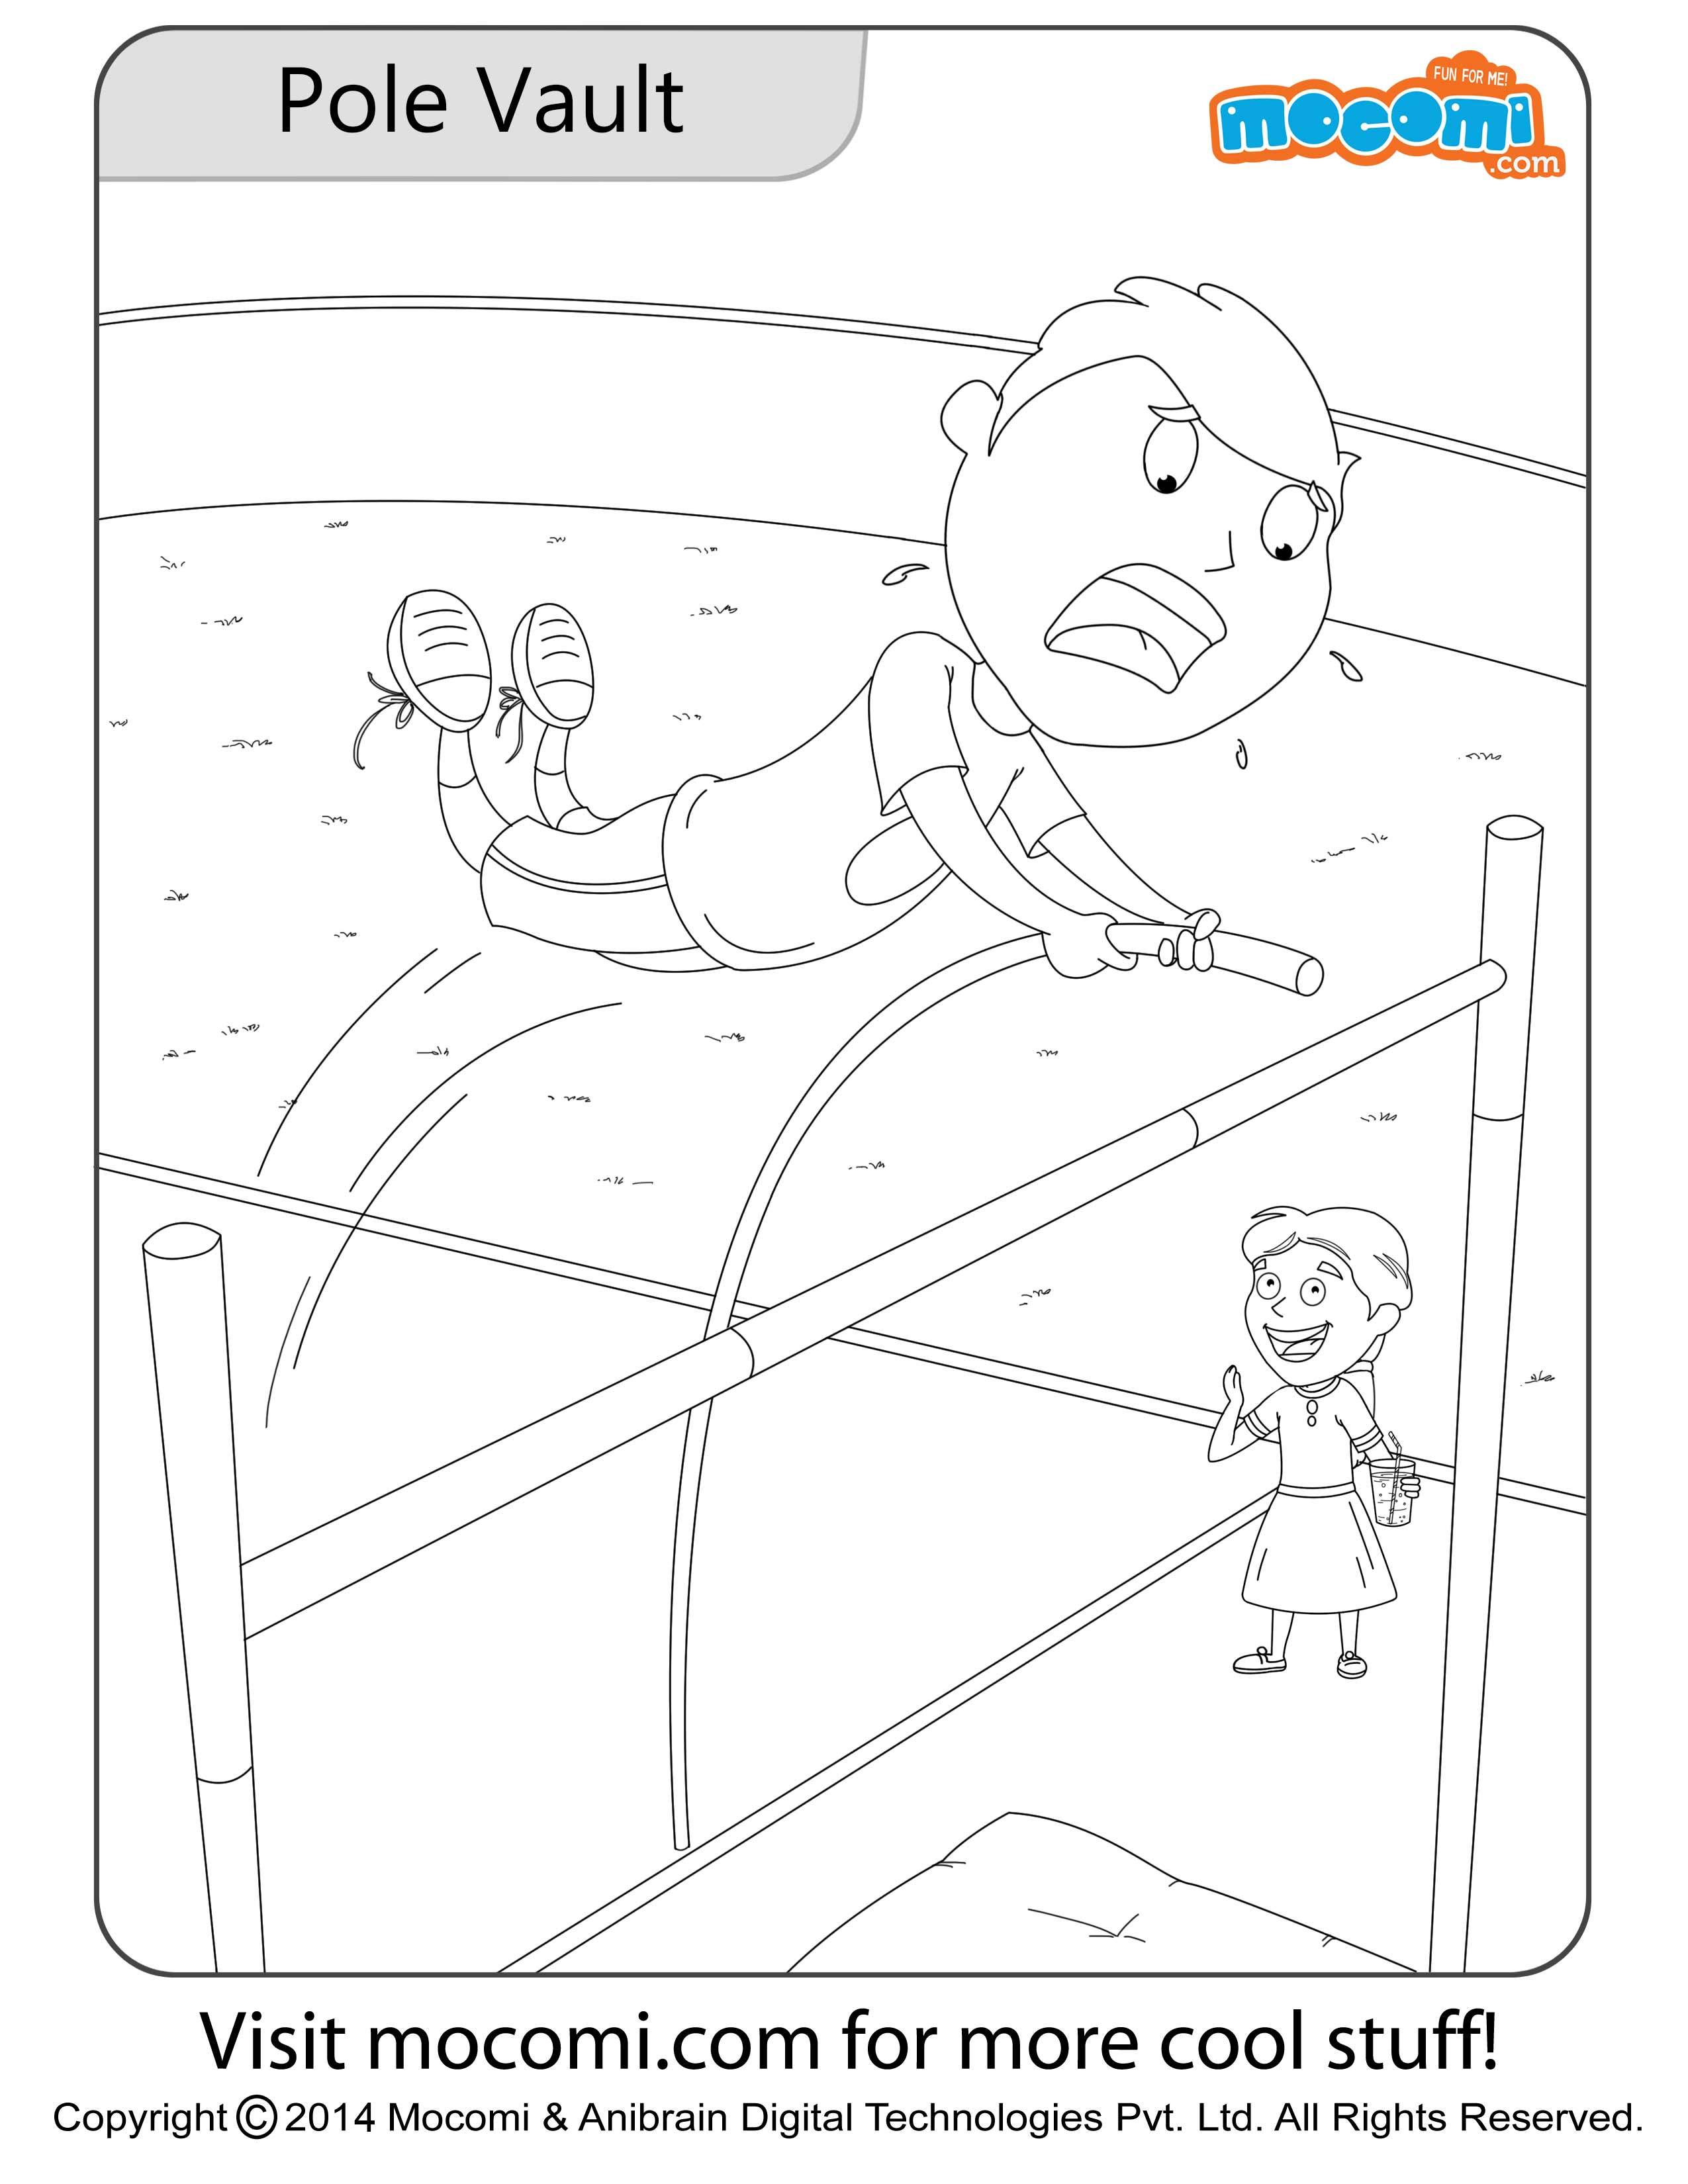 Pole Vault – Colouring Page